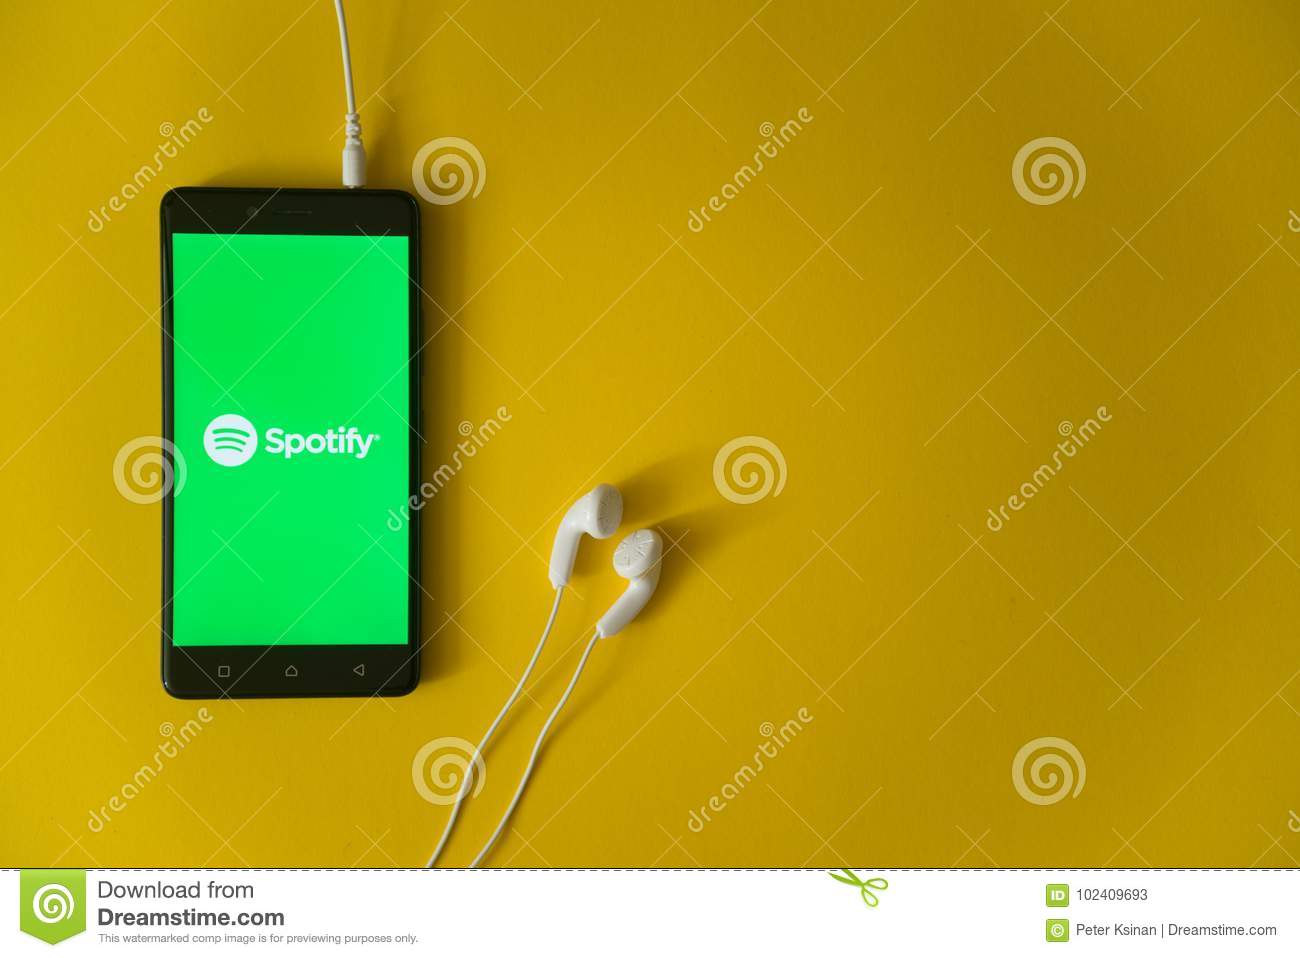 Spotify Logo On Smartphone Screen On Yellow Background Editorial